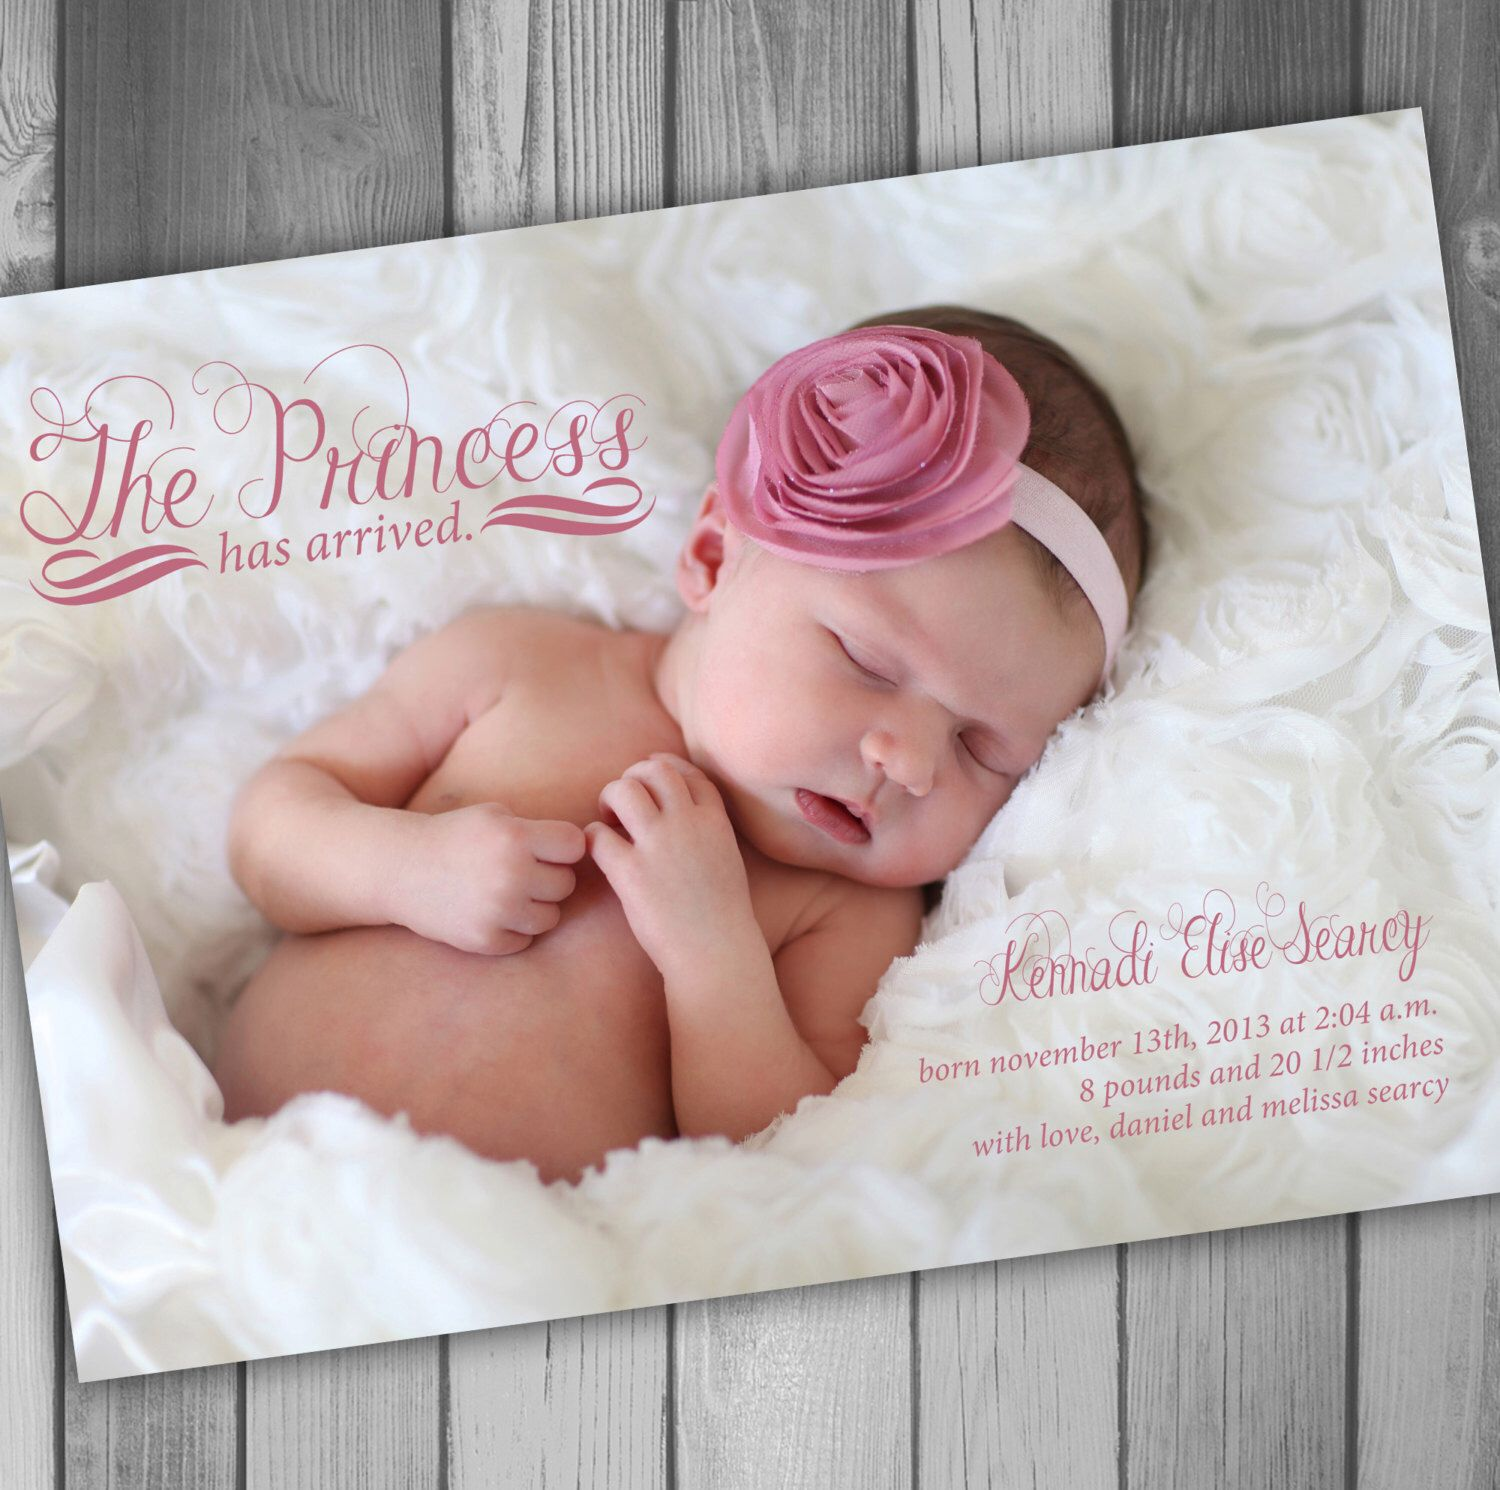 Princess Baby Girl Announcement Photo Baby Announcement Printable – Announcement of Birth of Baby Girl